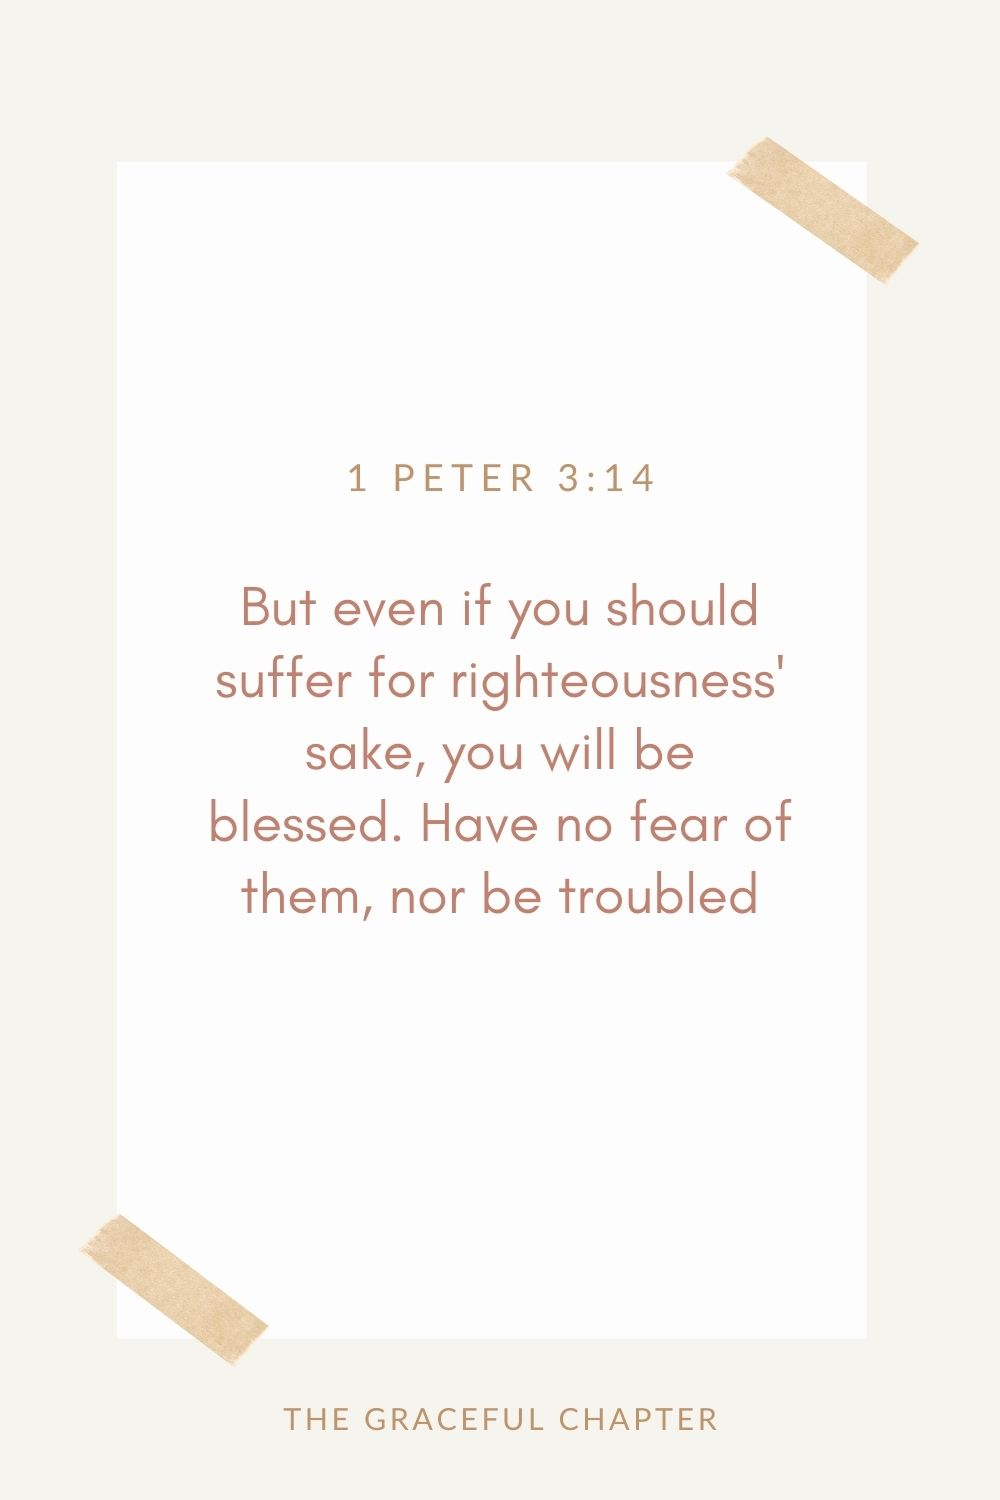 But even if you should suffer for righteousness' sake, you will be blessed. Have no fear of them, nor be troubled, 1 Peter 3:14